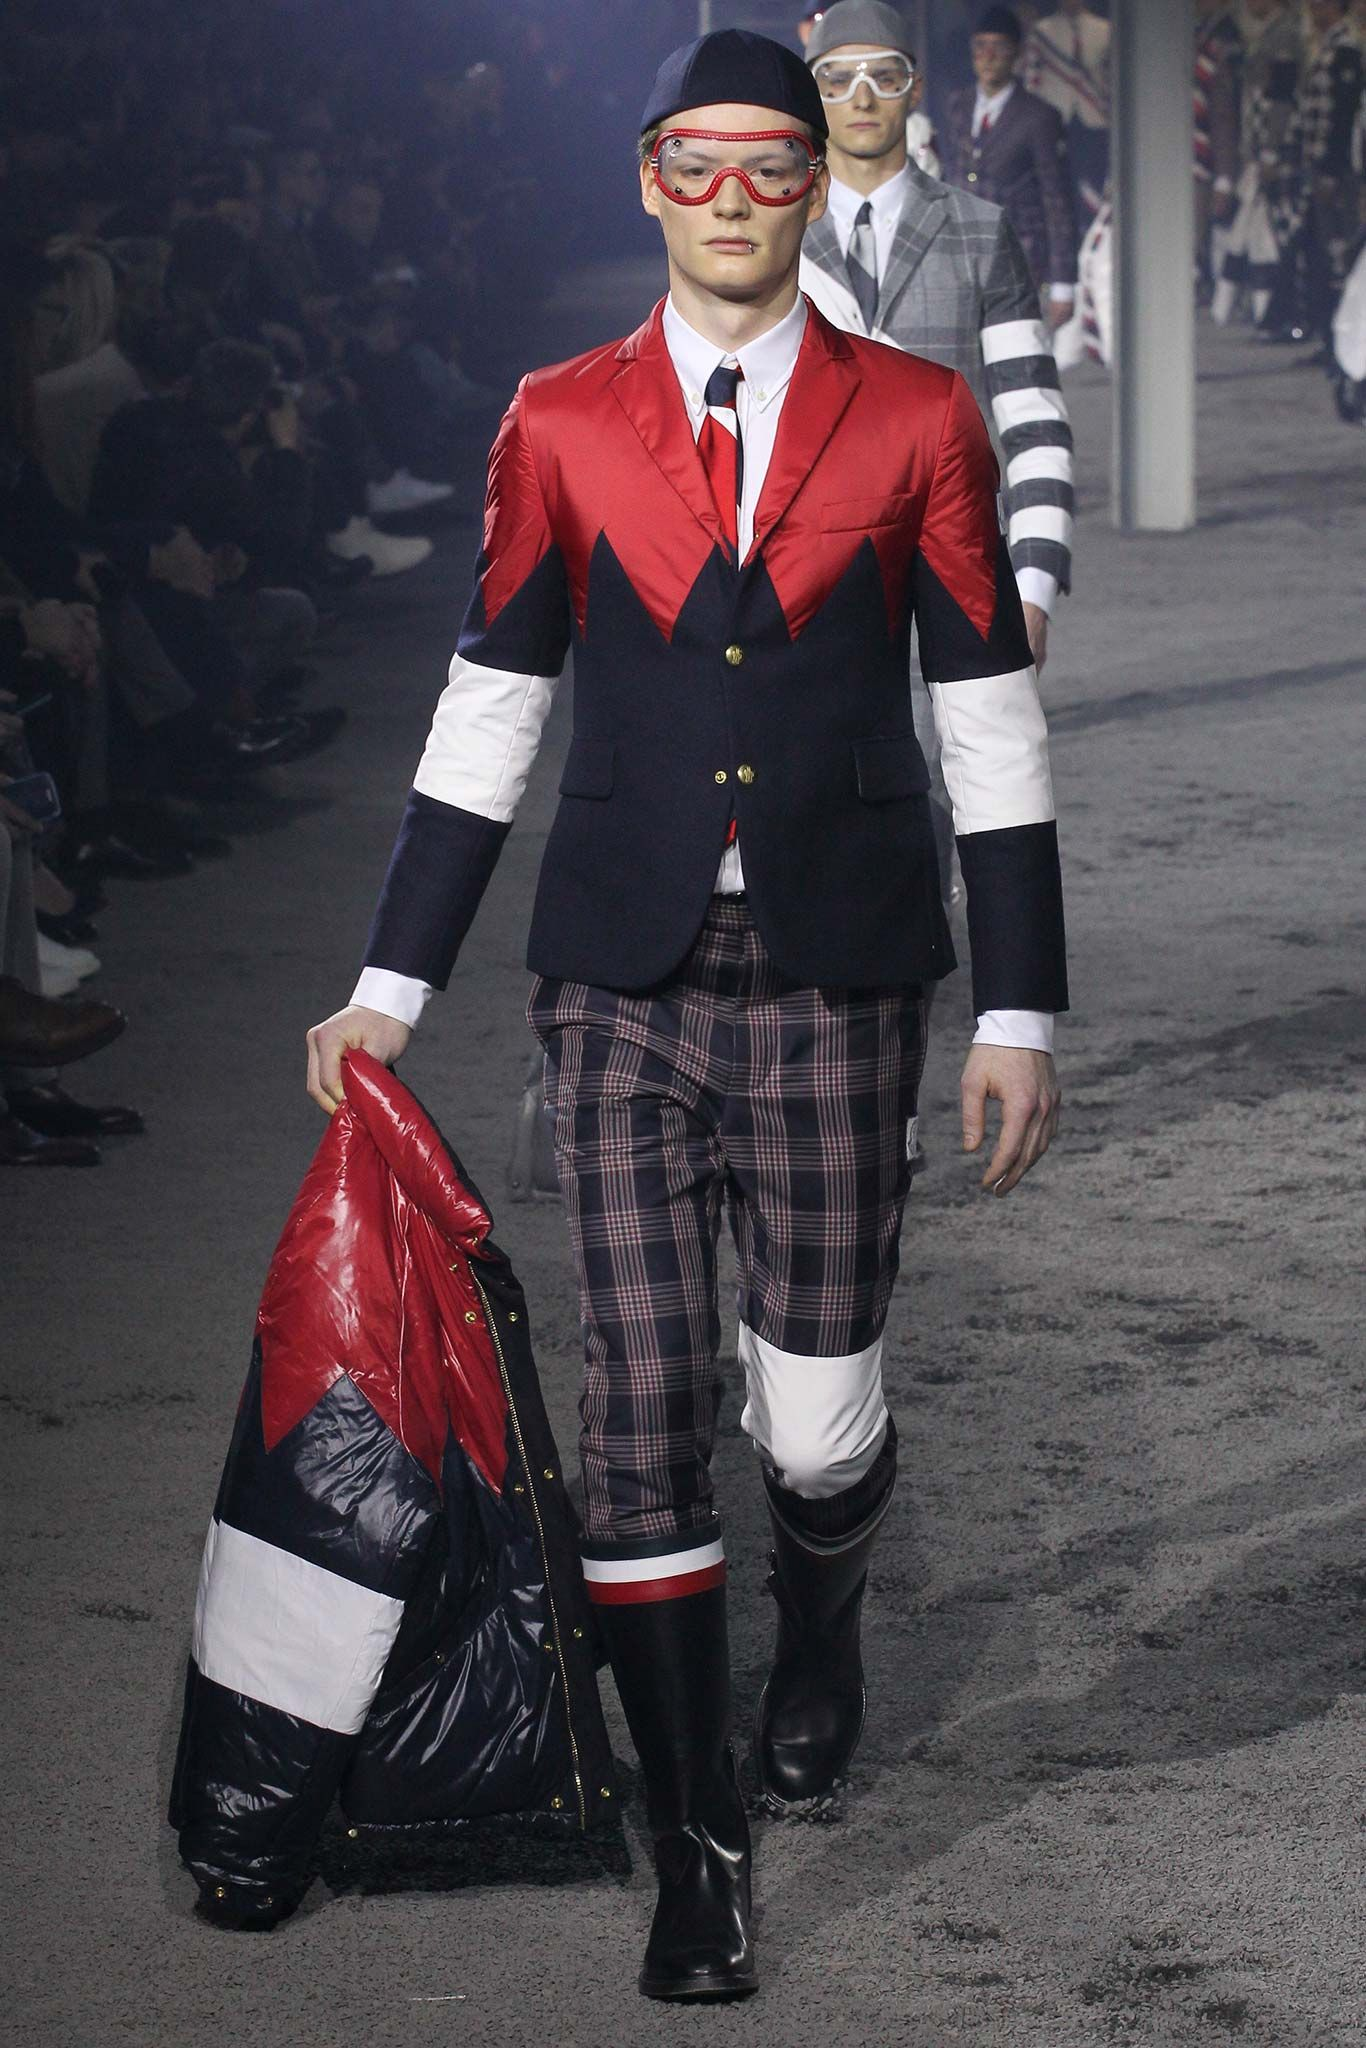 Moncler Gamme Bleu Fall 2015 Menswear - Collection - Gallery - Style.com